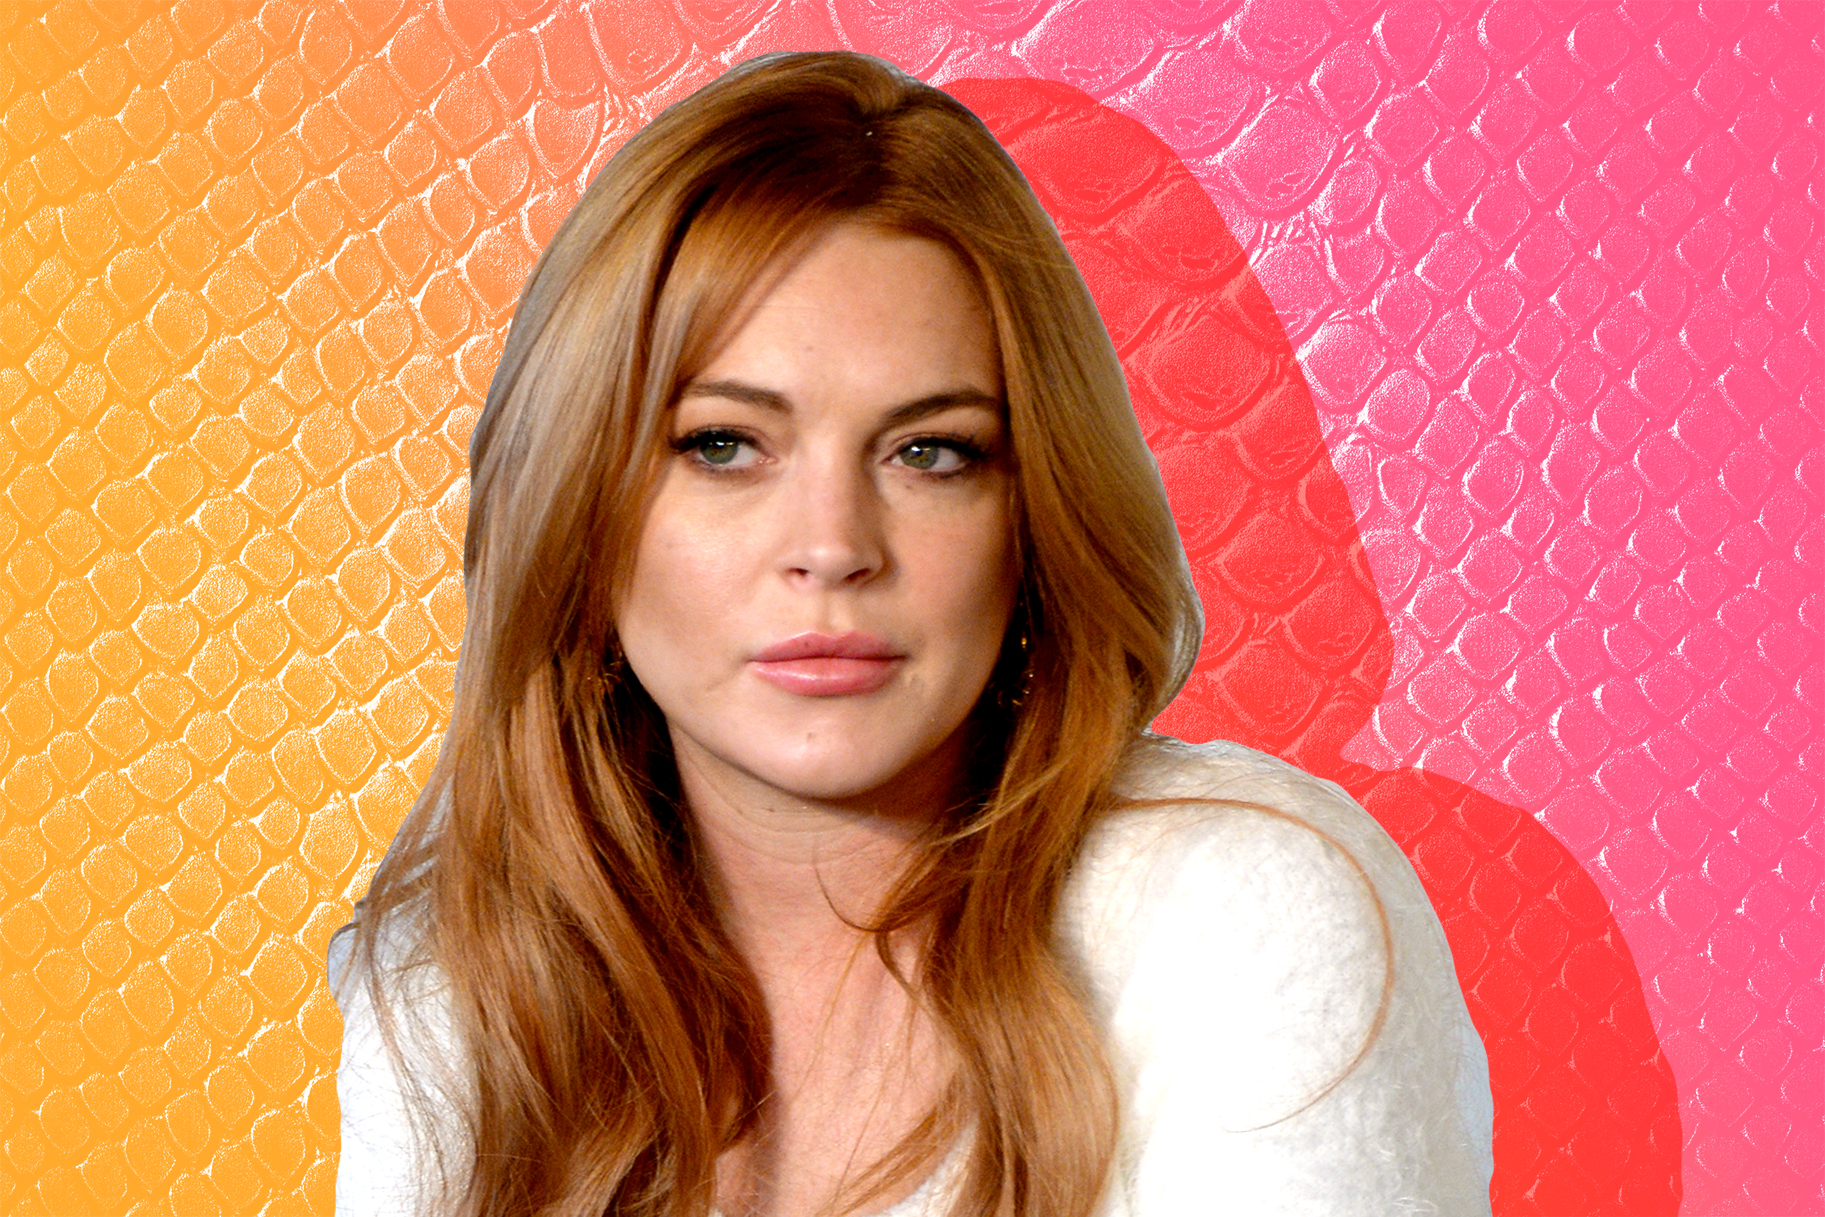 Lindsay Lohan Nightclub in Greece: She'll Fire Servers For ...